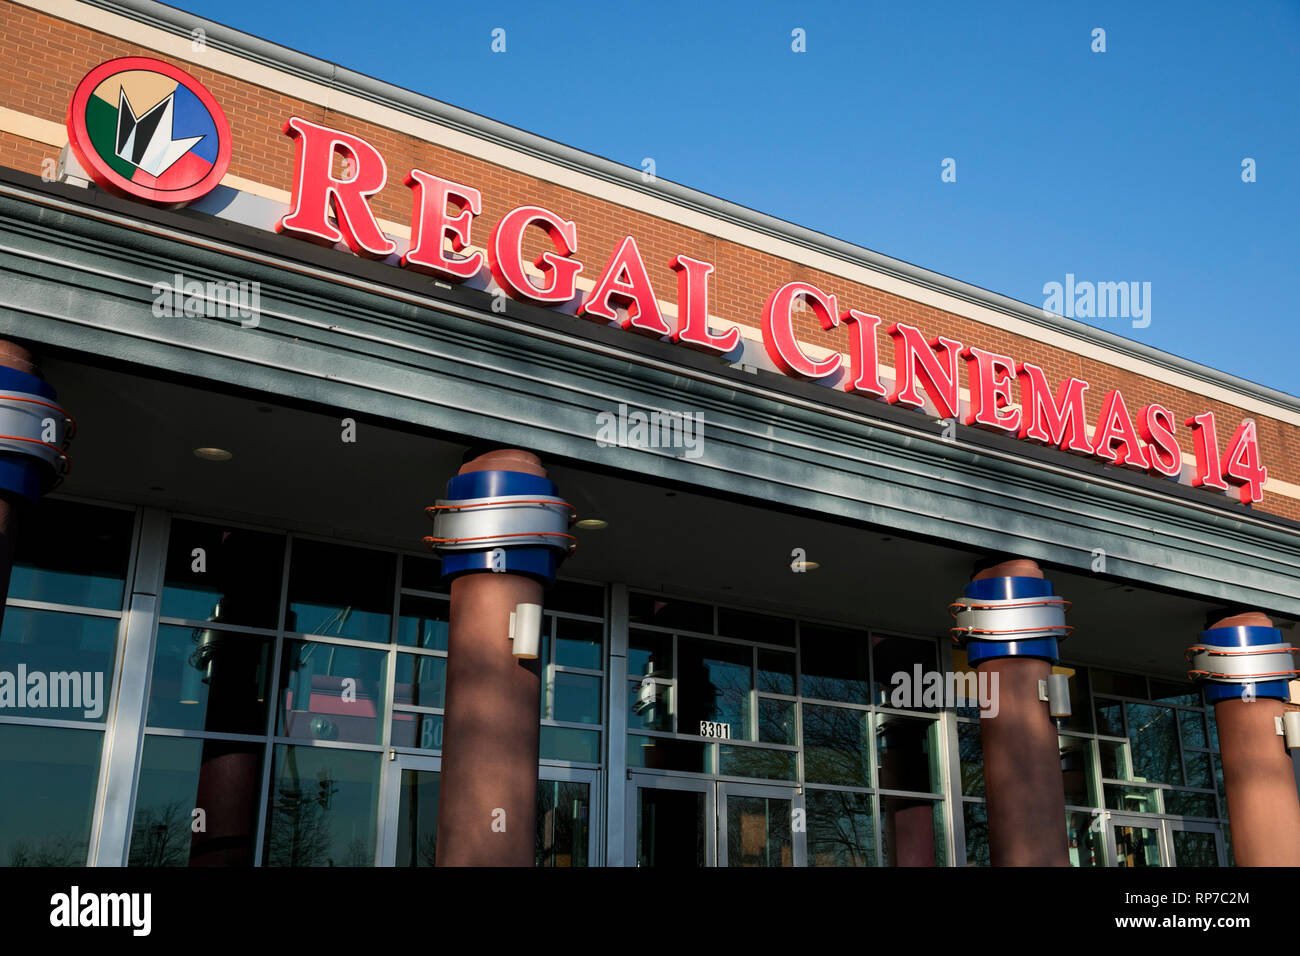 A logo sign outside of a Regal Cinemas movie theater location in